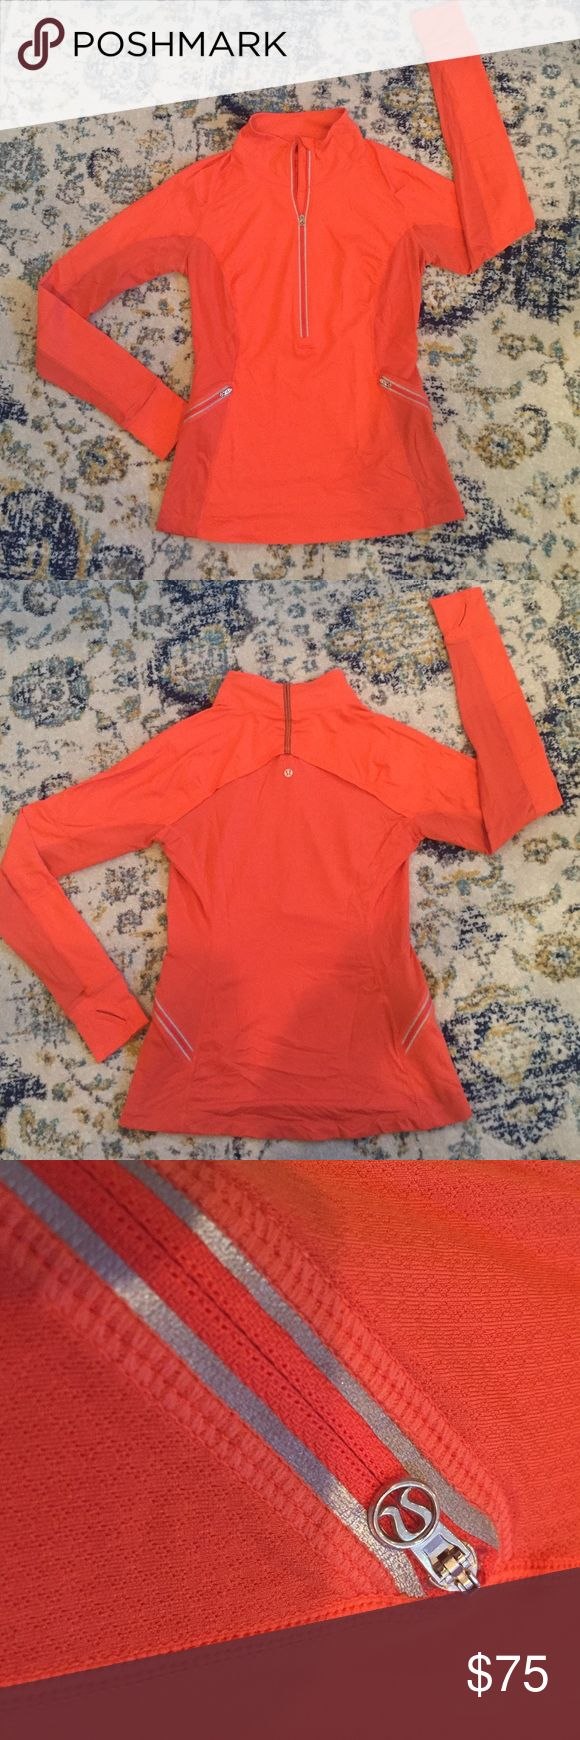 Lululemon pullover Orange pullover with two zip up pockets, thumb holes, and a breathable mesh back.. only worn a few times & in great condition! lululemon athletica Tops Tees - Long Sleeve